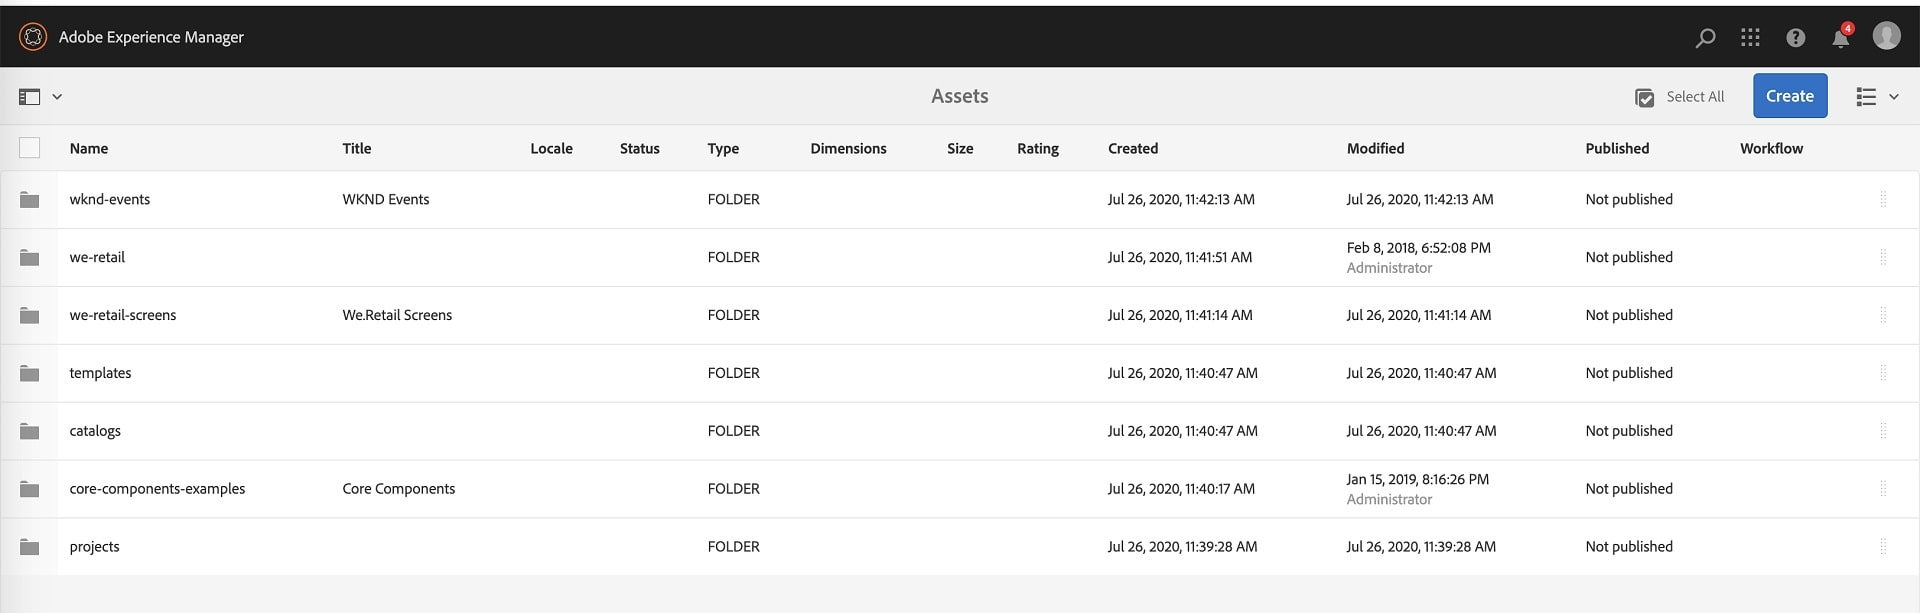 List view as default view in AEM